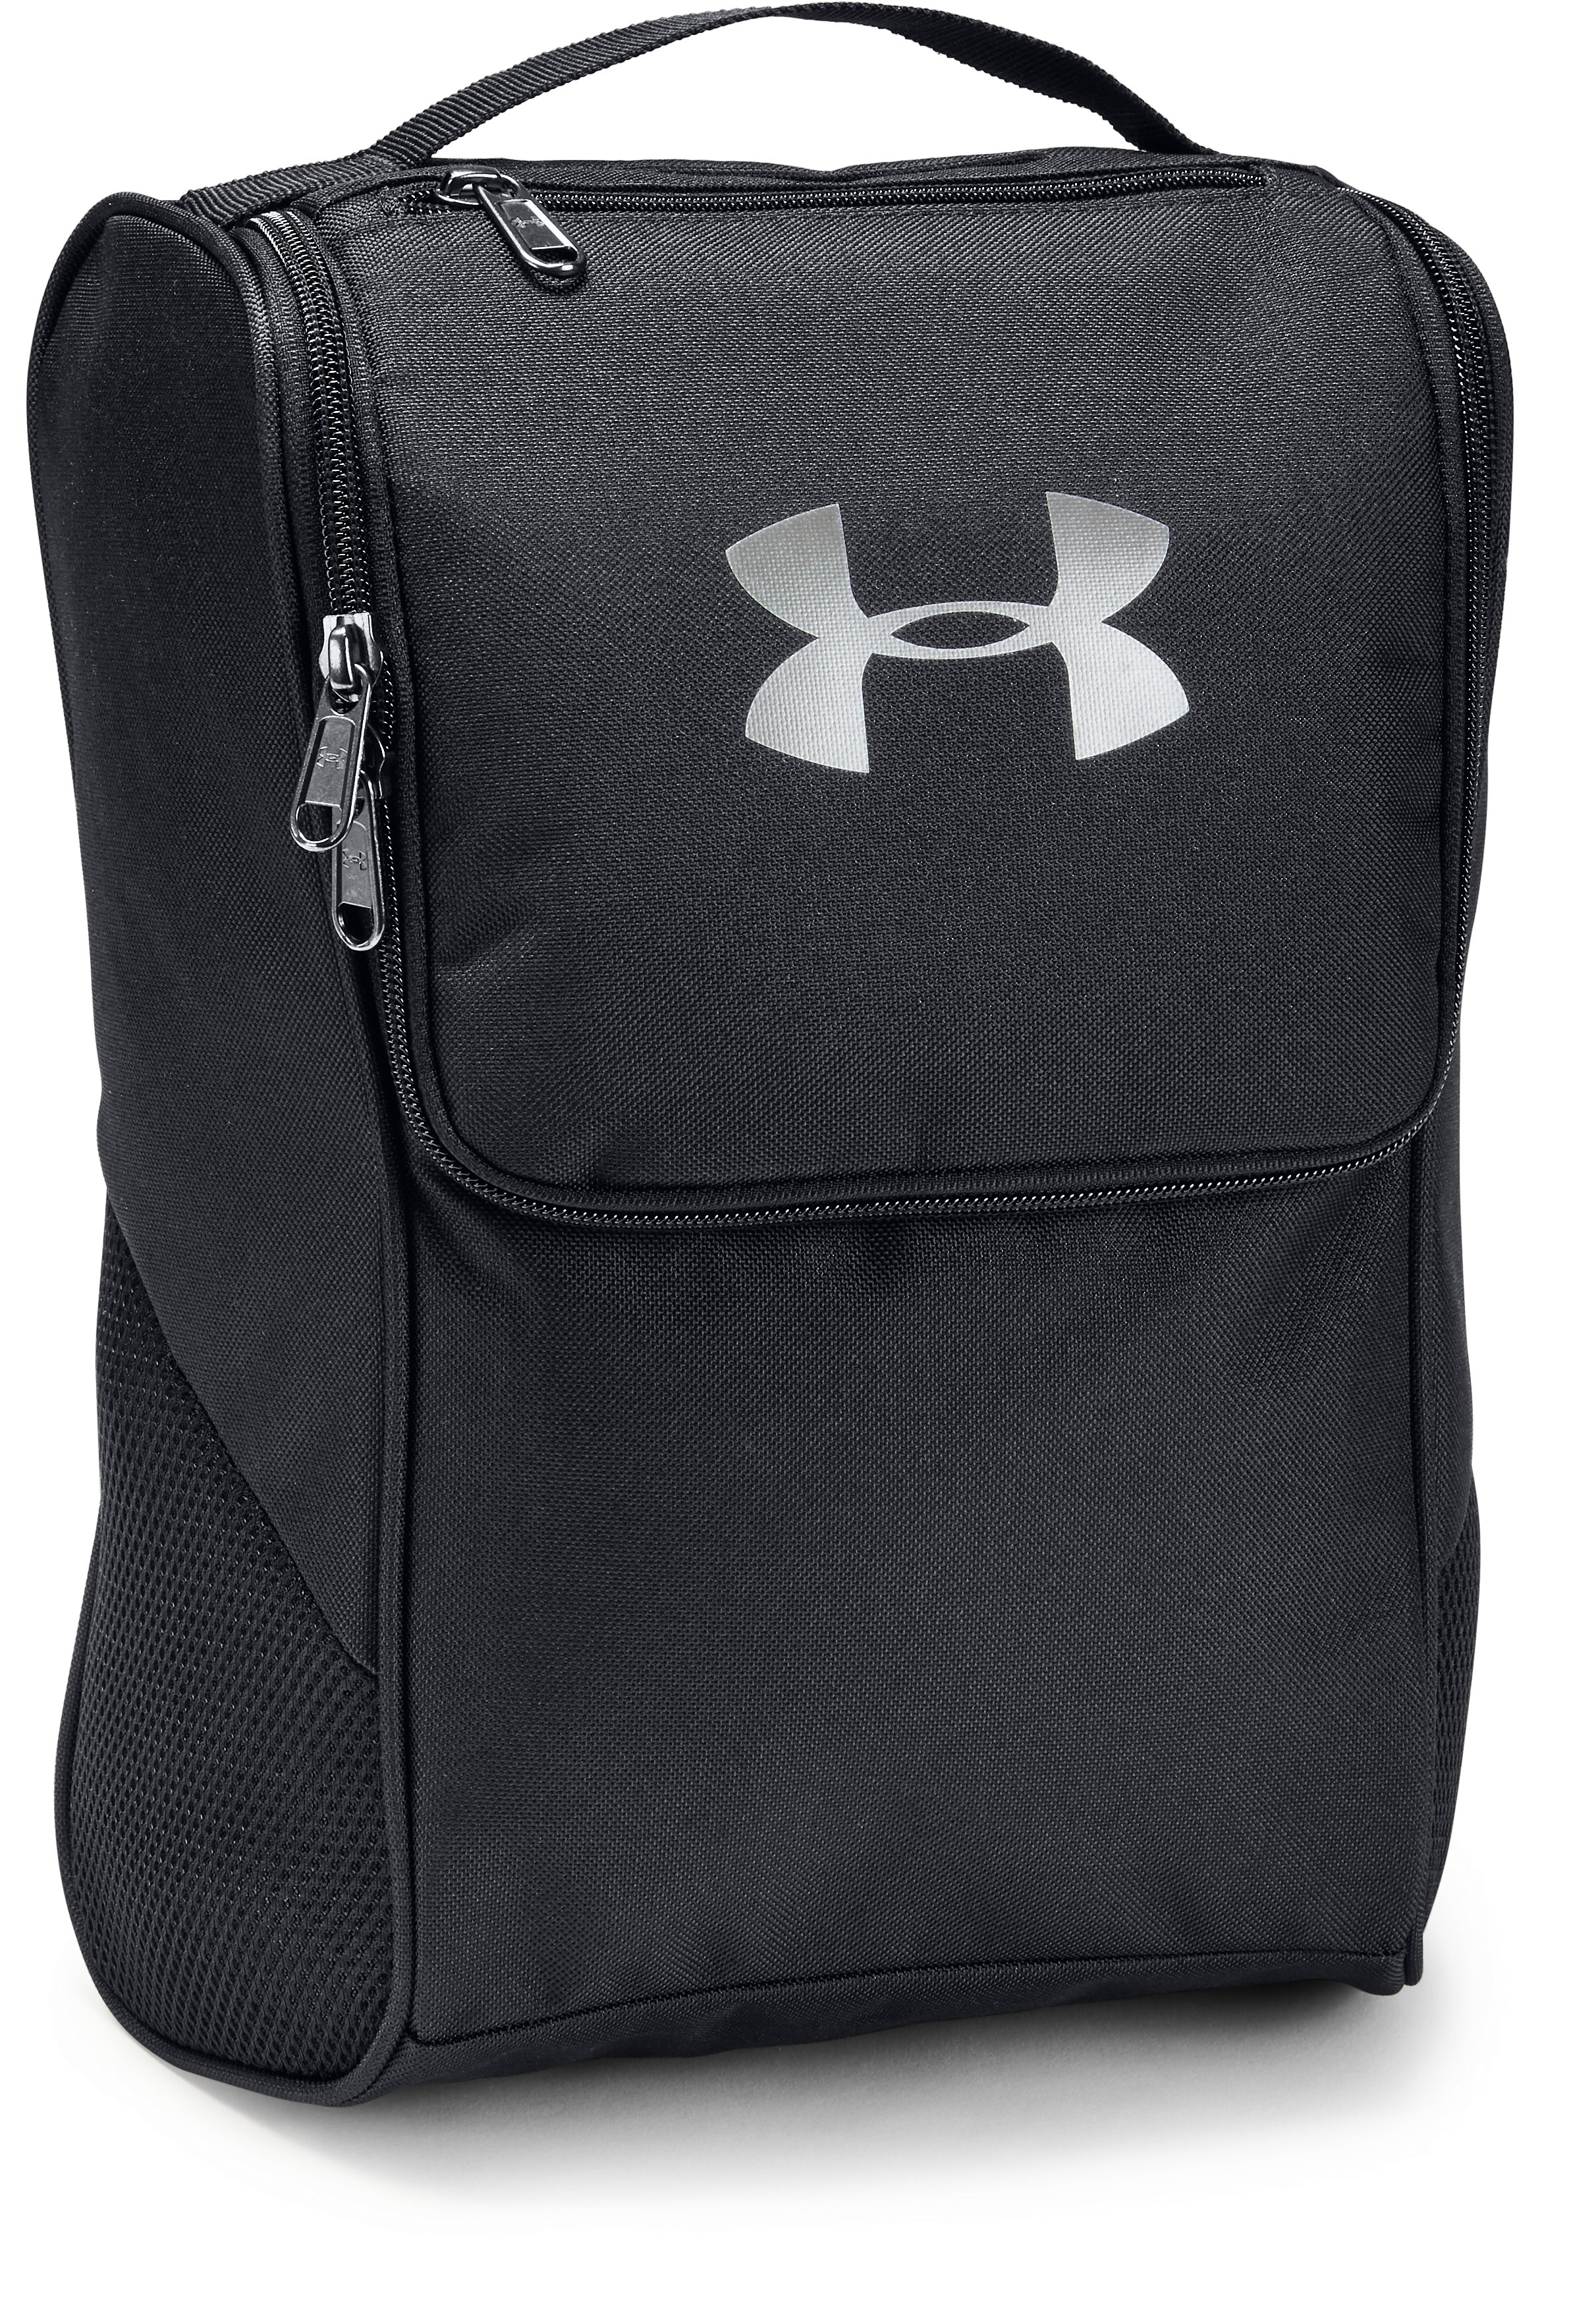 UA Shoe Bag, Black